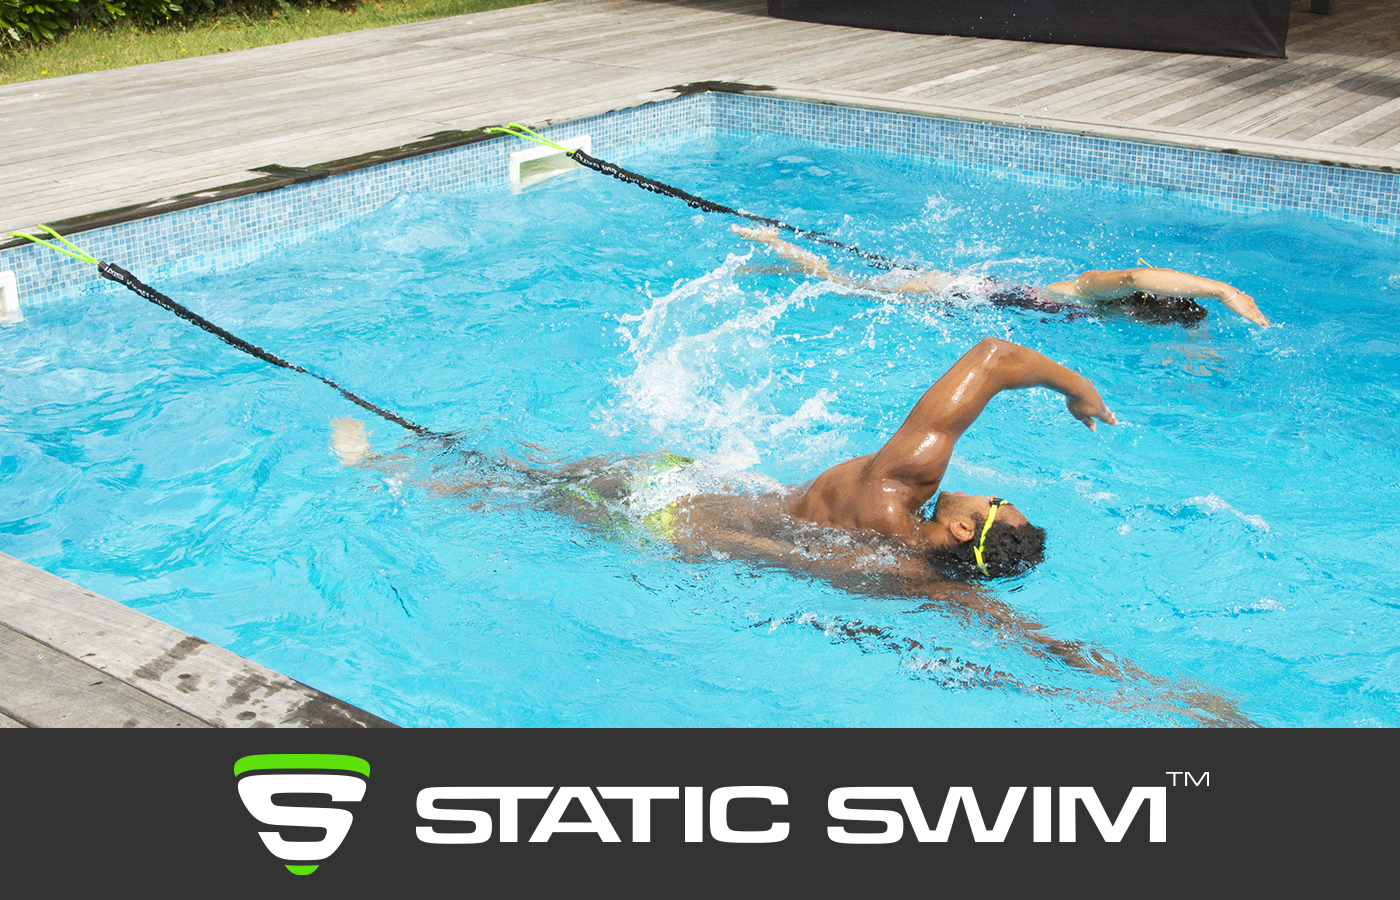 STATIC SWIM™ entraînement crawl piscine